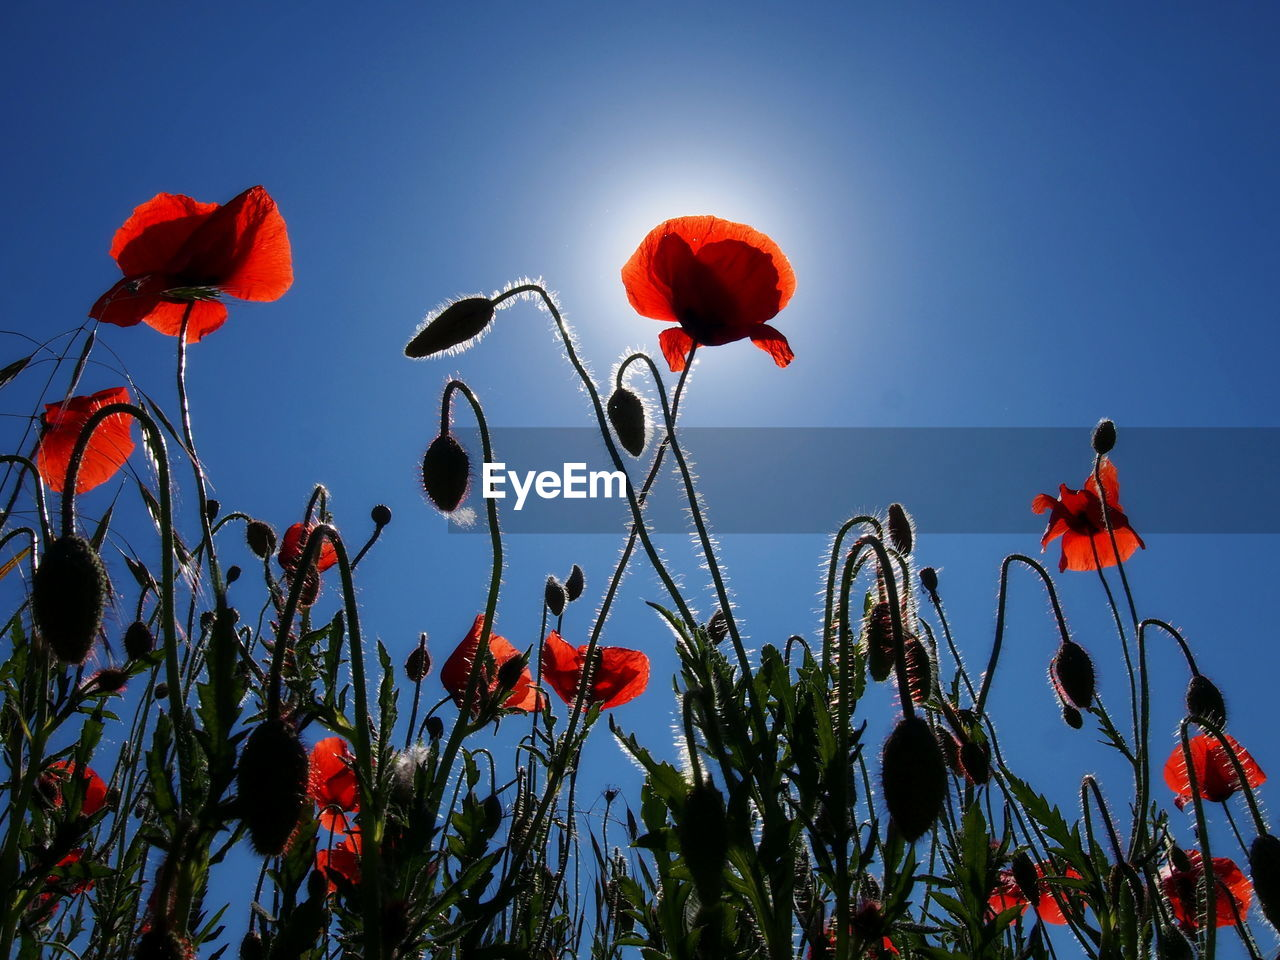 flower, flowering plant, plant, beauty in nature, freshness, sky, red, growth, petal, fragility, vulnerability, nature, poppy, close-up, flower head, low angle view, inflorescence, no people, clear sky, day, outdoors